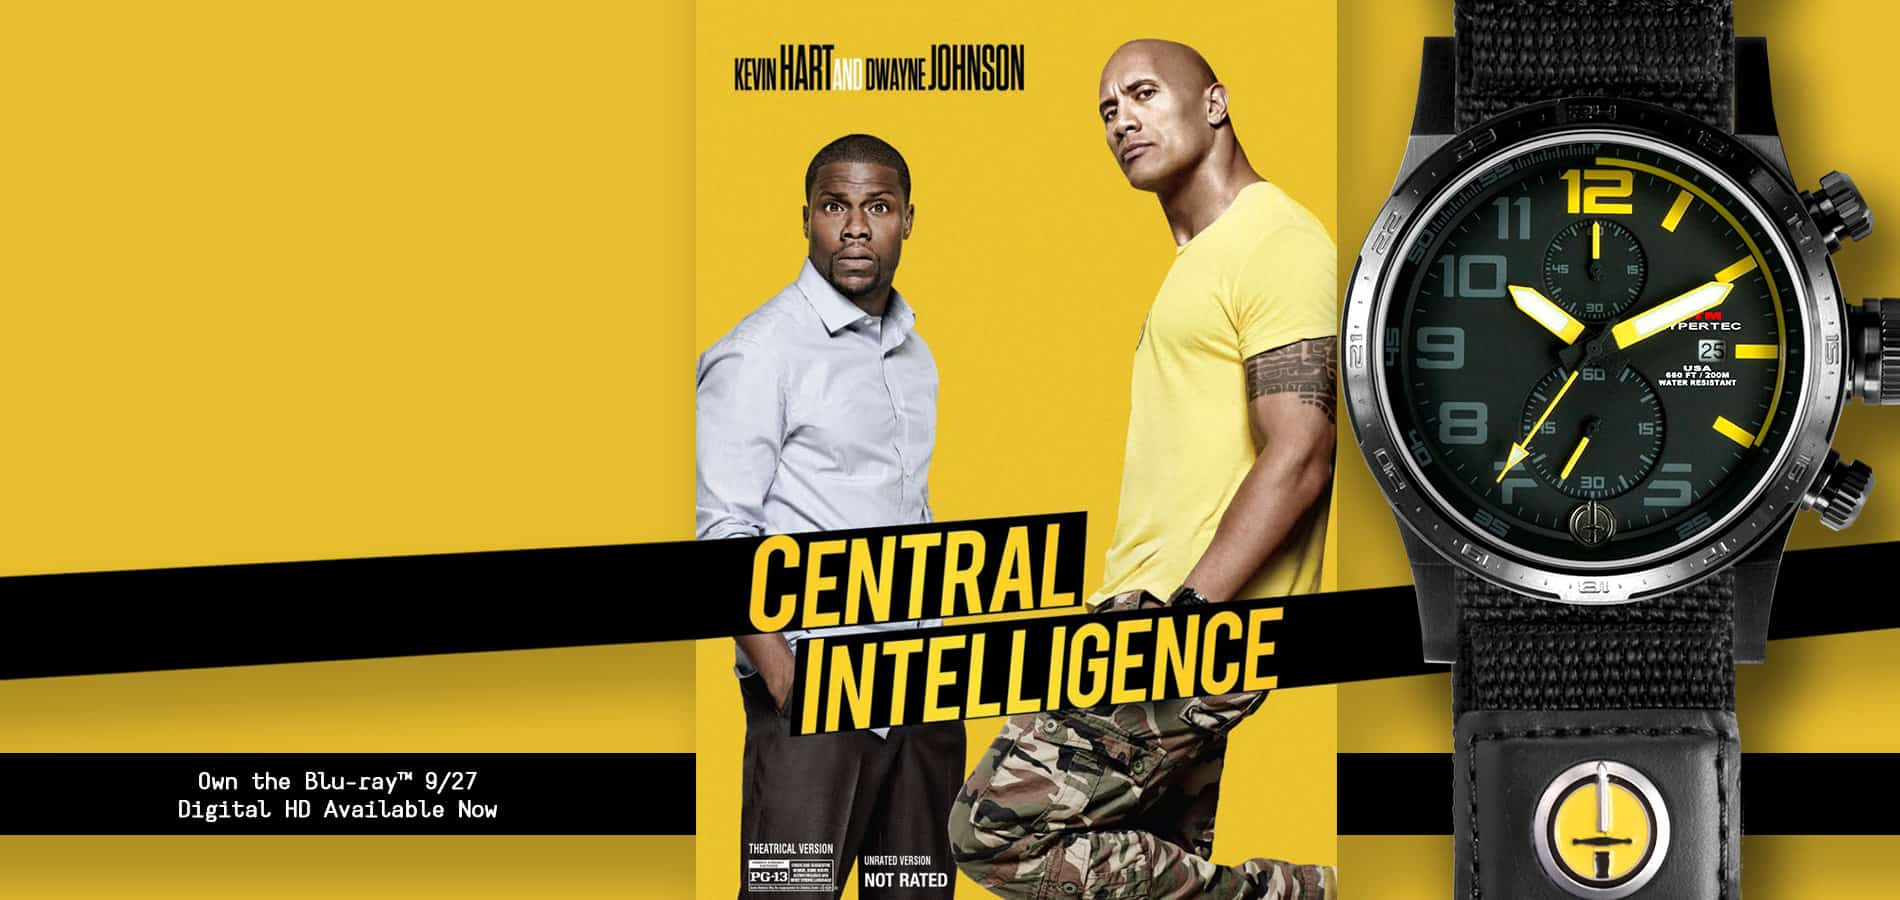 Central Intelligence Movie Giveaway